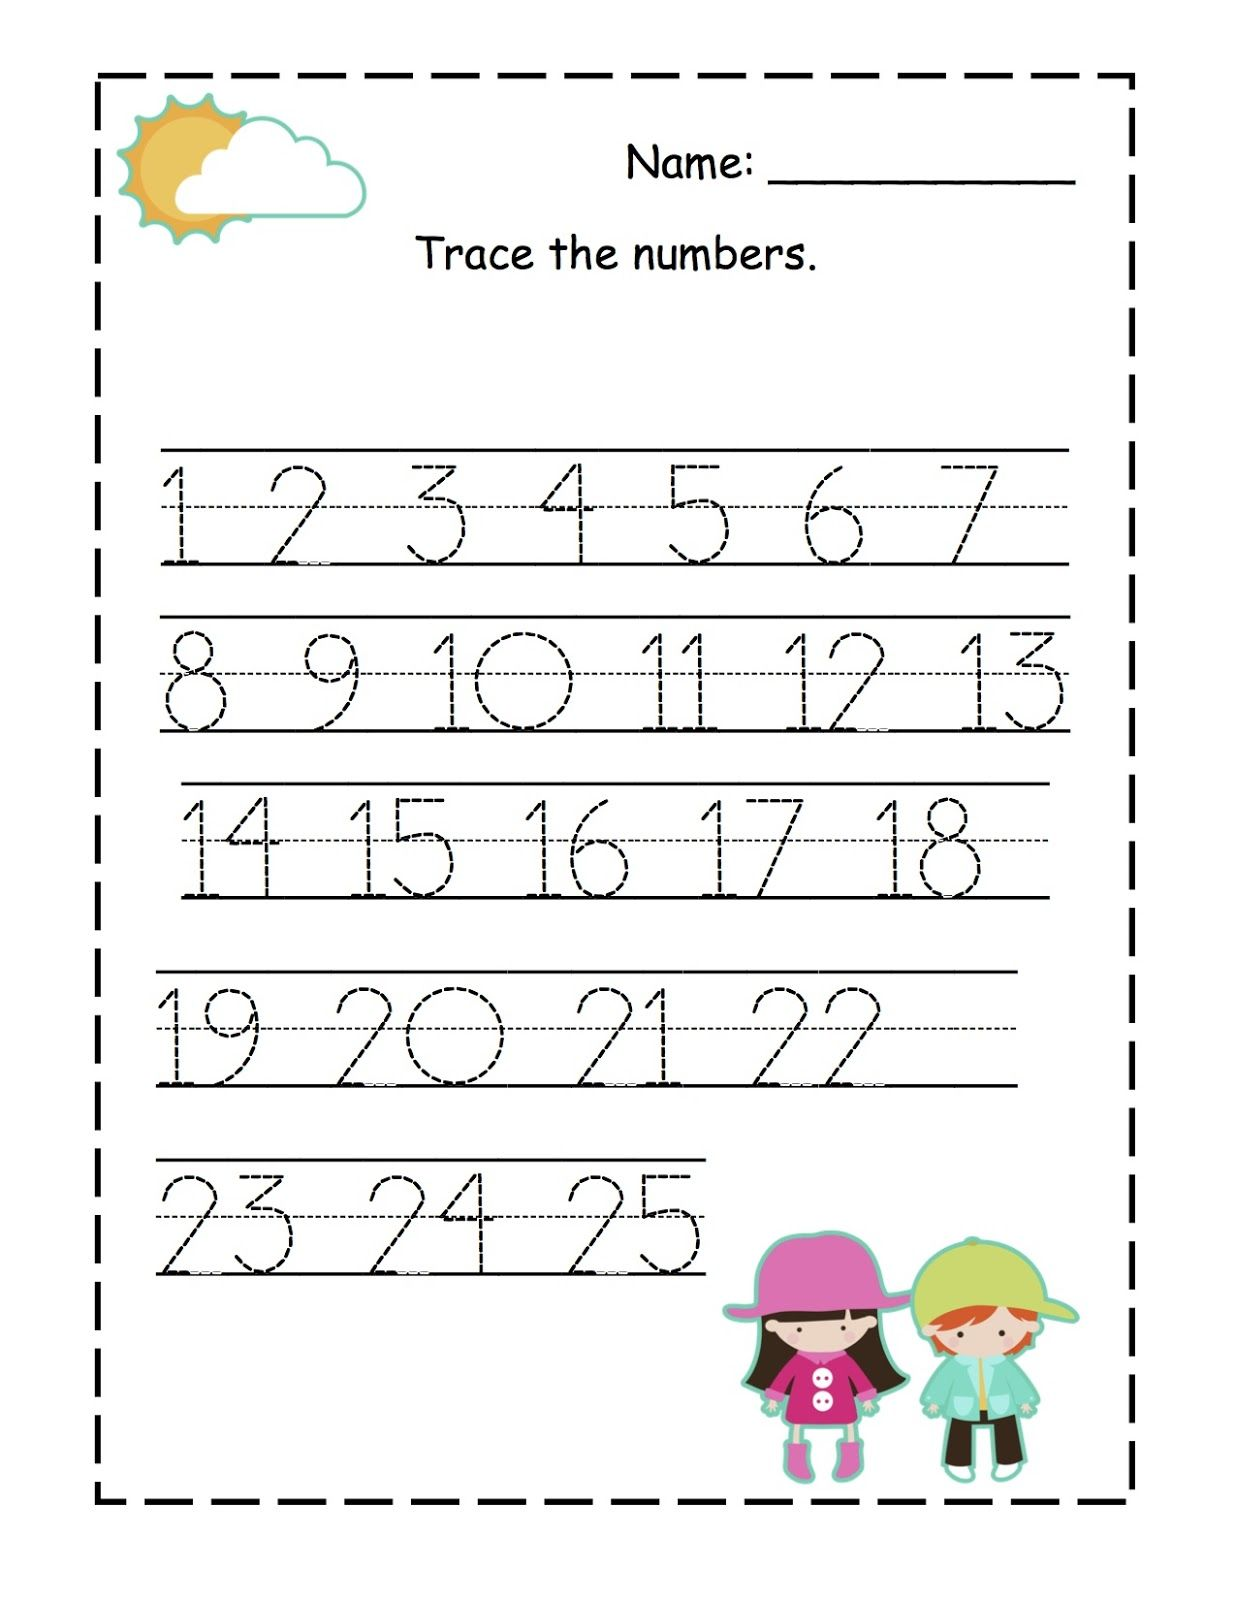 Preschool Printables | Classroom - academic | Pinterest | Preschool ...